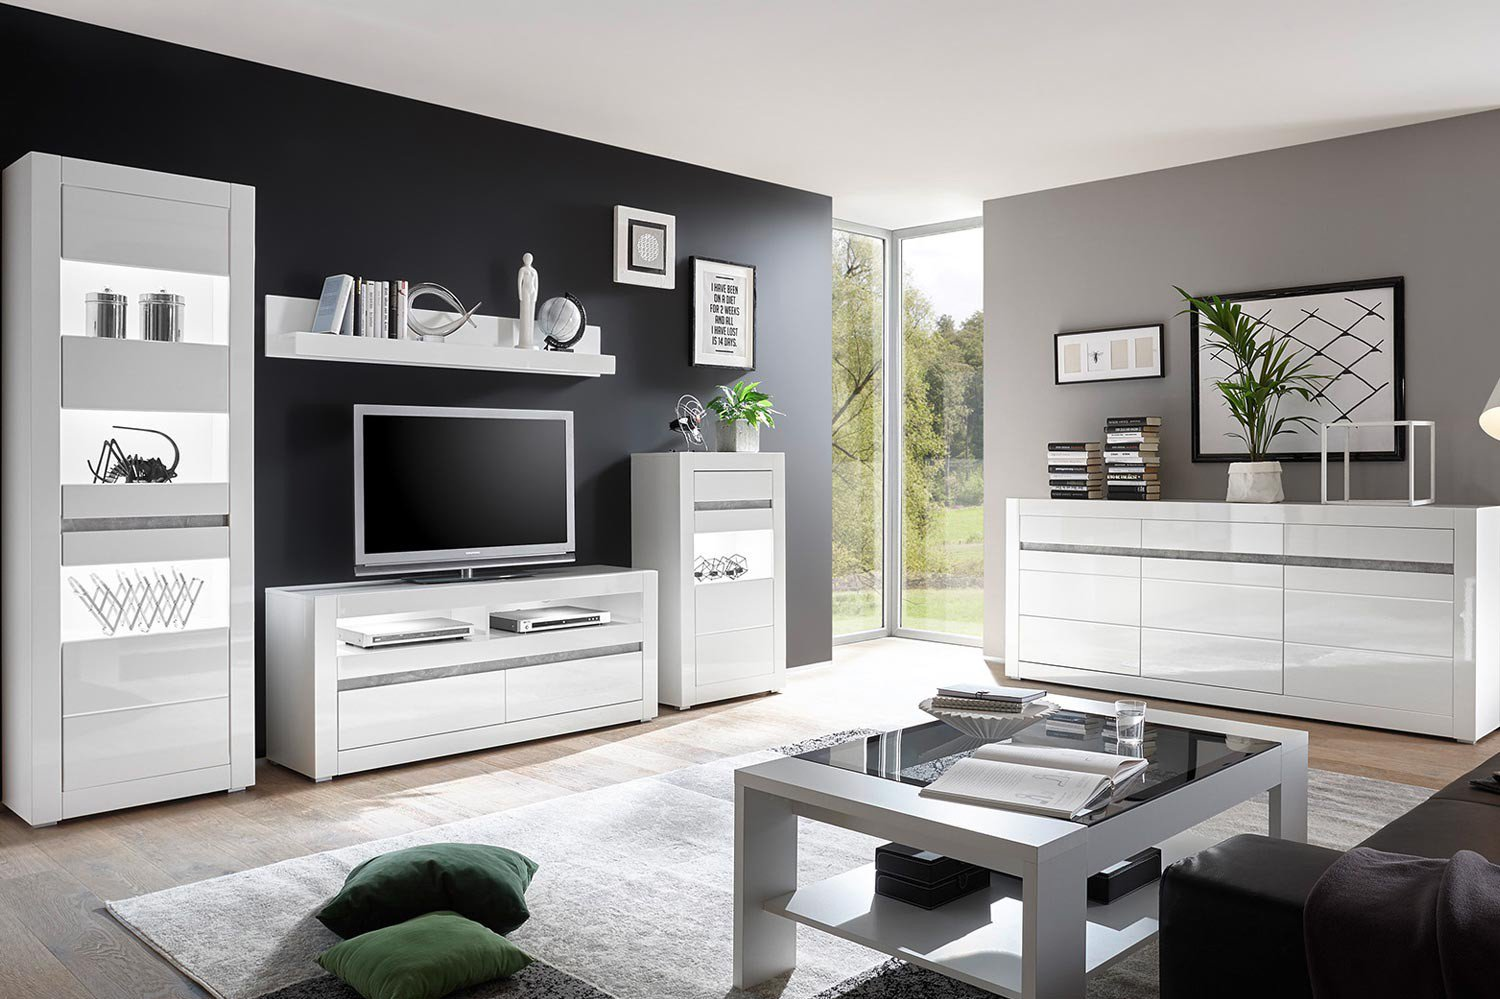 imv steinheim wohnwand carat wei hochglanz m bel letz. Black Bedroom Furniture Sets. Home Design Ideas